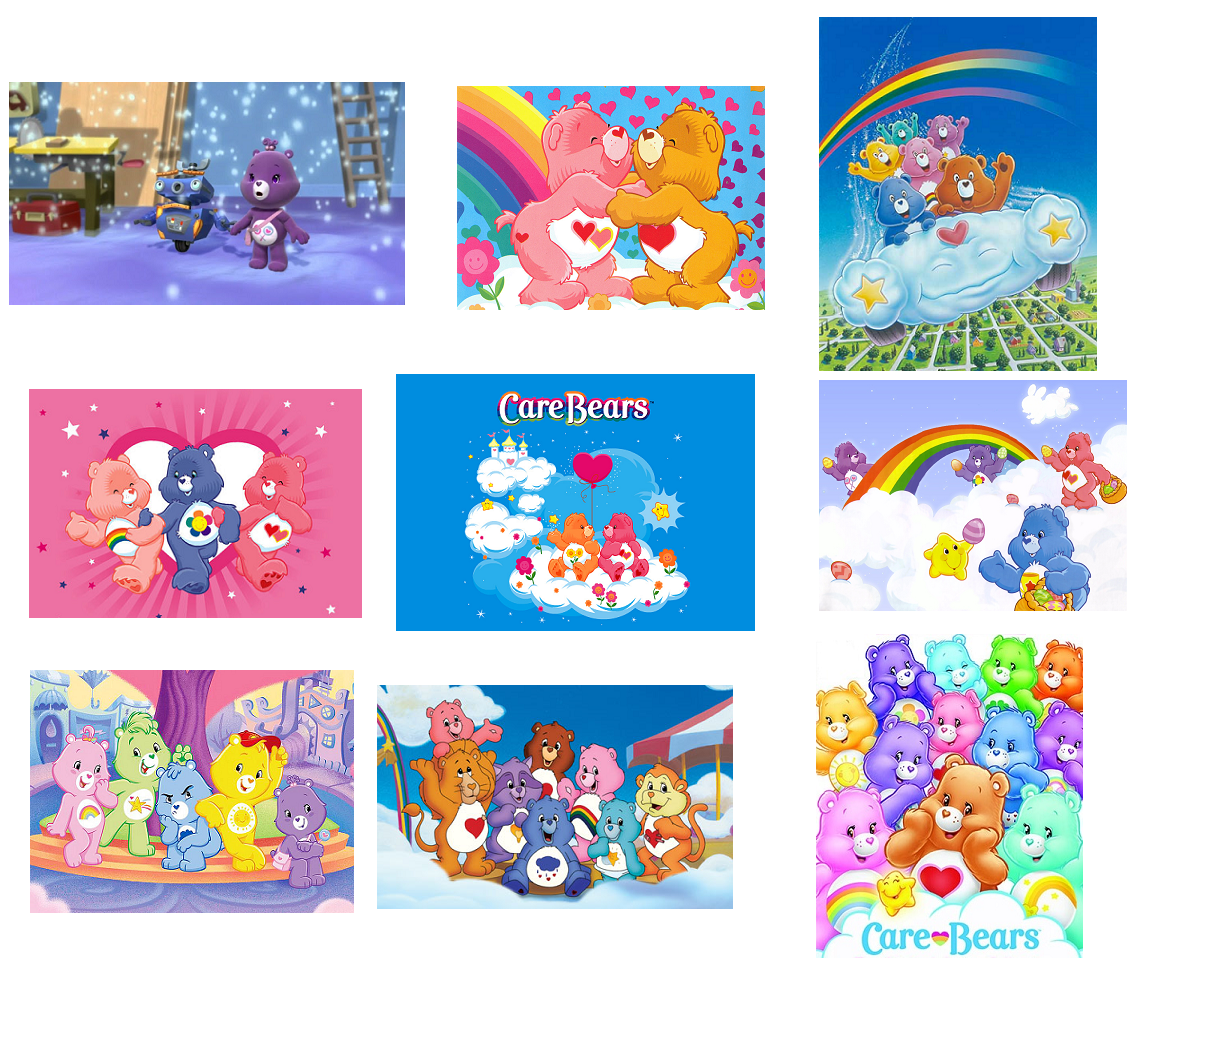 9 Care Bears Inspired Stickers, Party Supplies, Decorations, Labels, Favors - $8.99